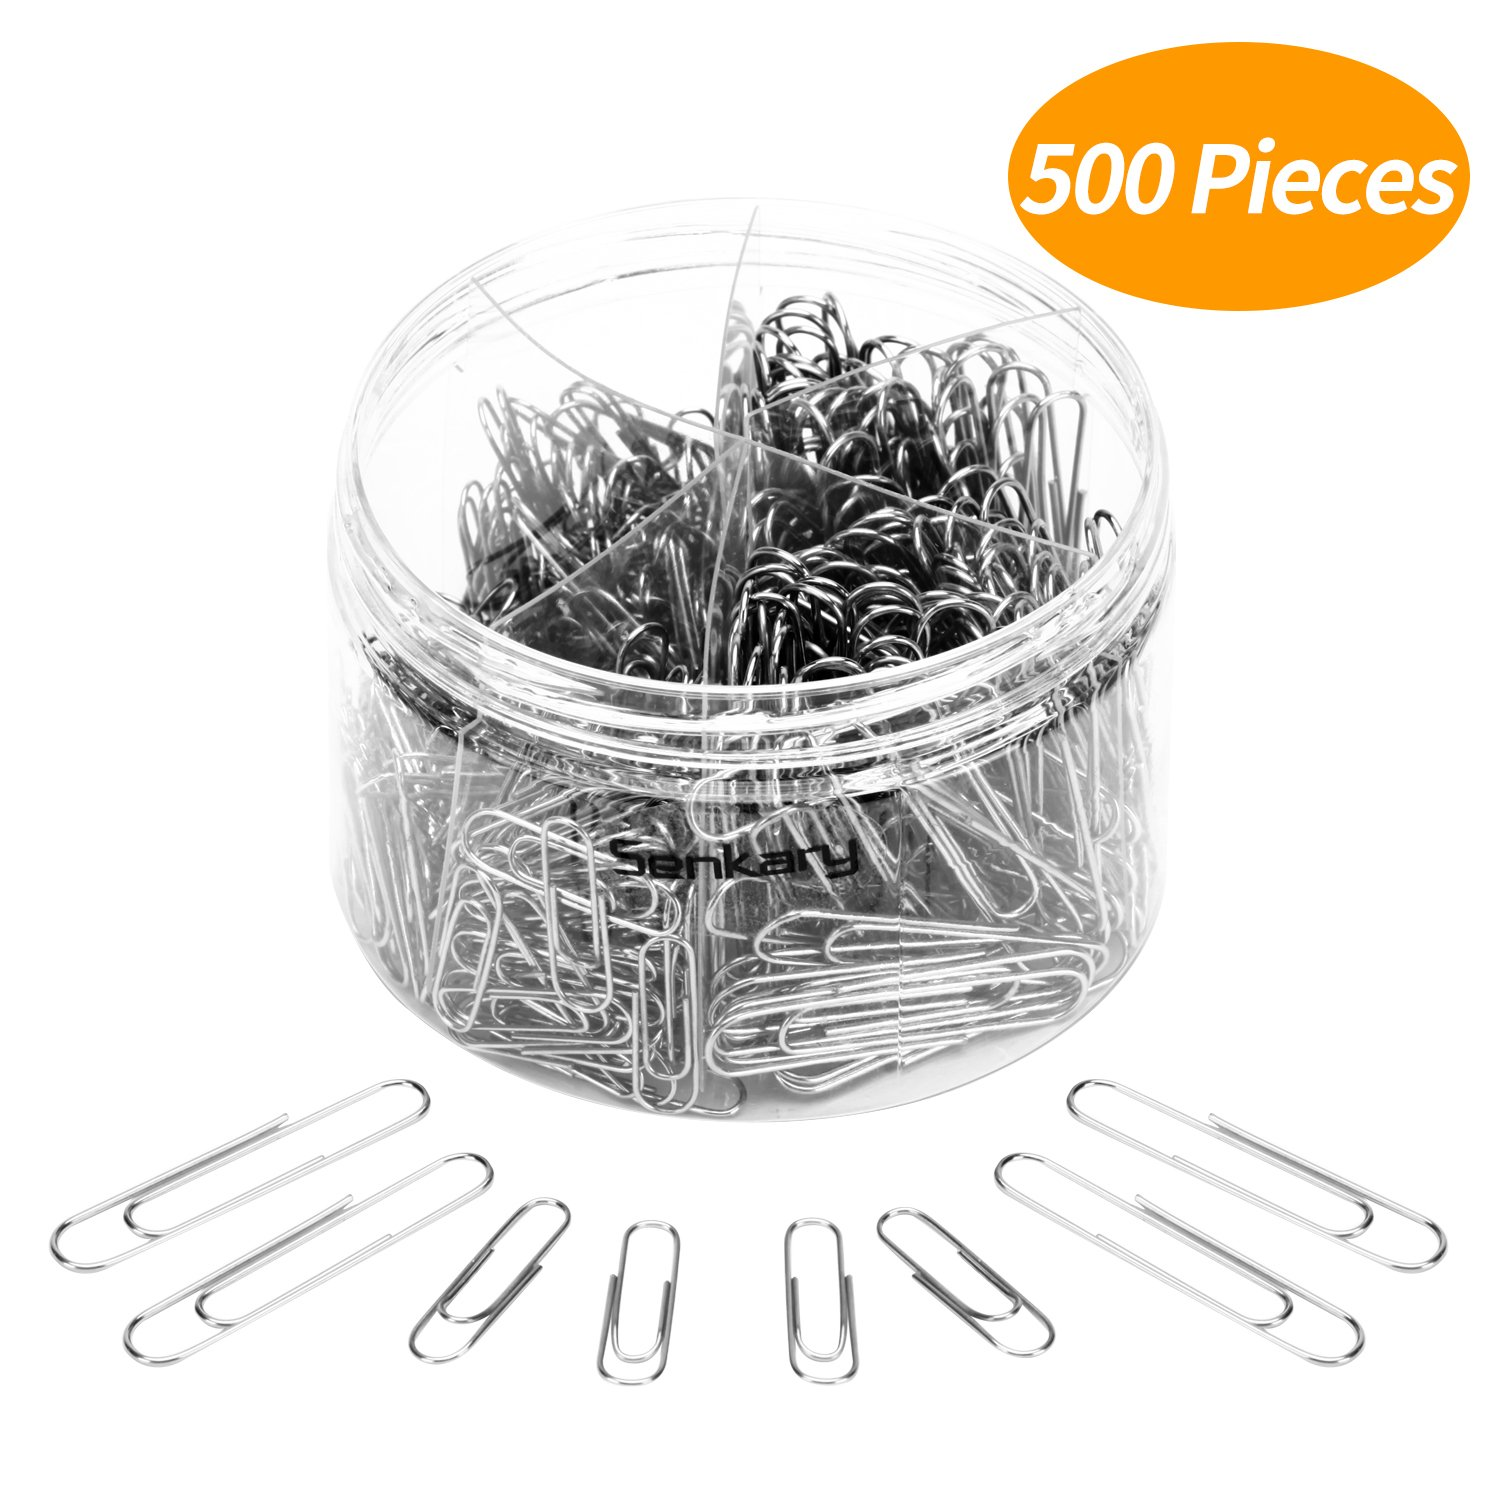 Senkary 500 Pieces Paper Clips Medium and Jumbo Size for Office Supplies, Crafts, Planners and School, Silver (28 mm, 50 mm)